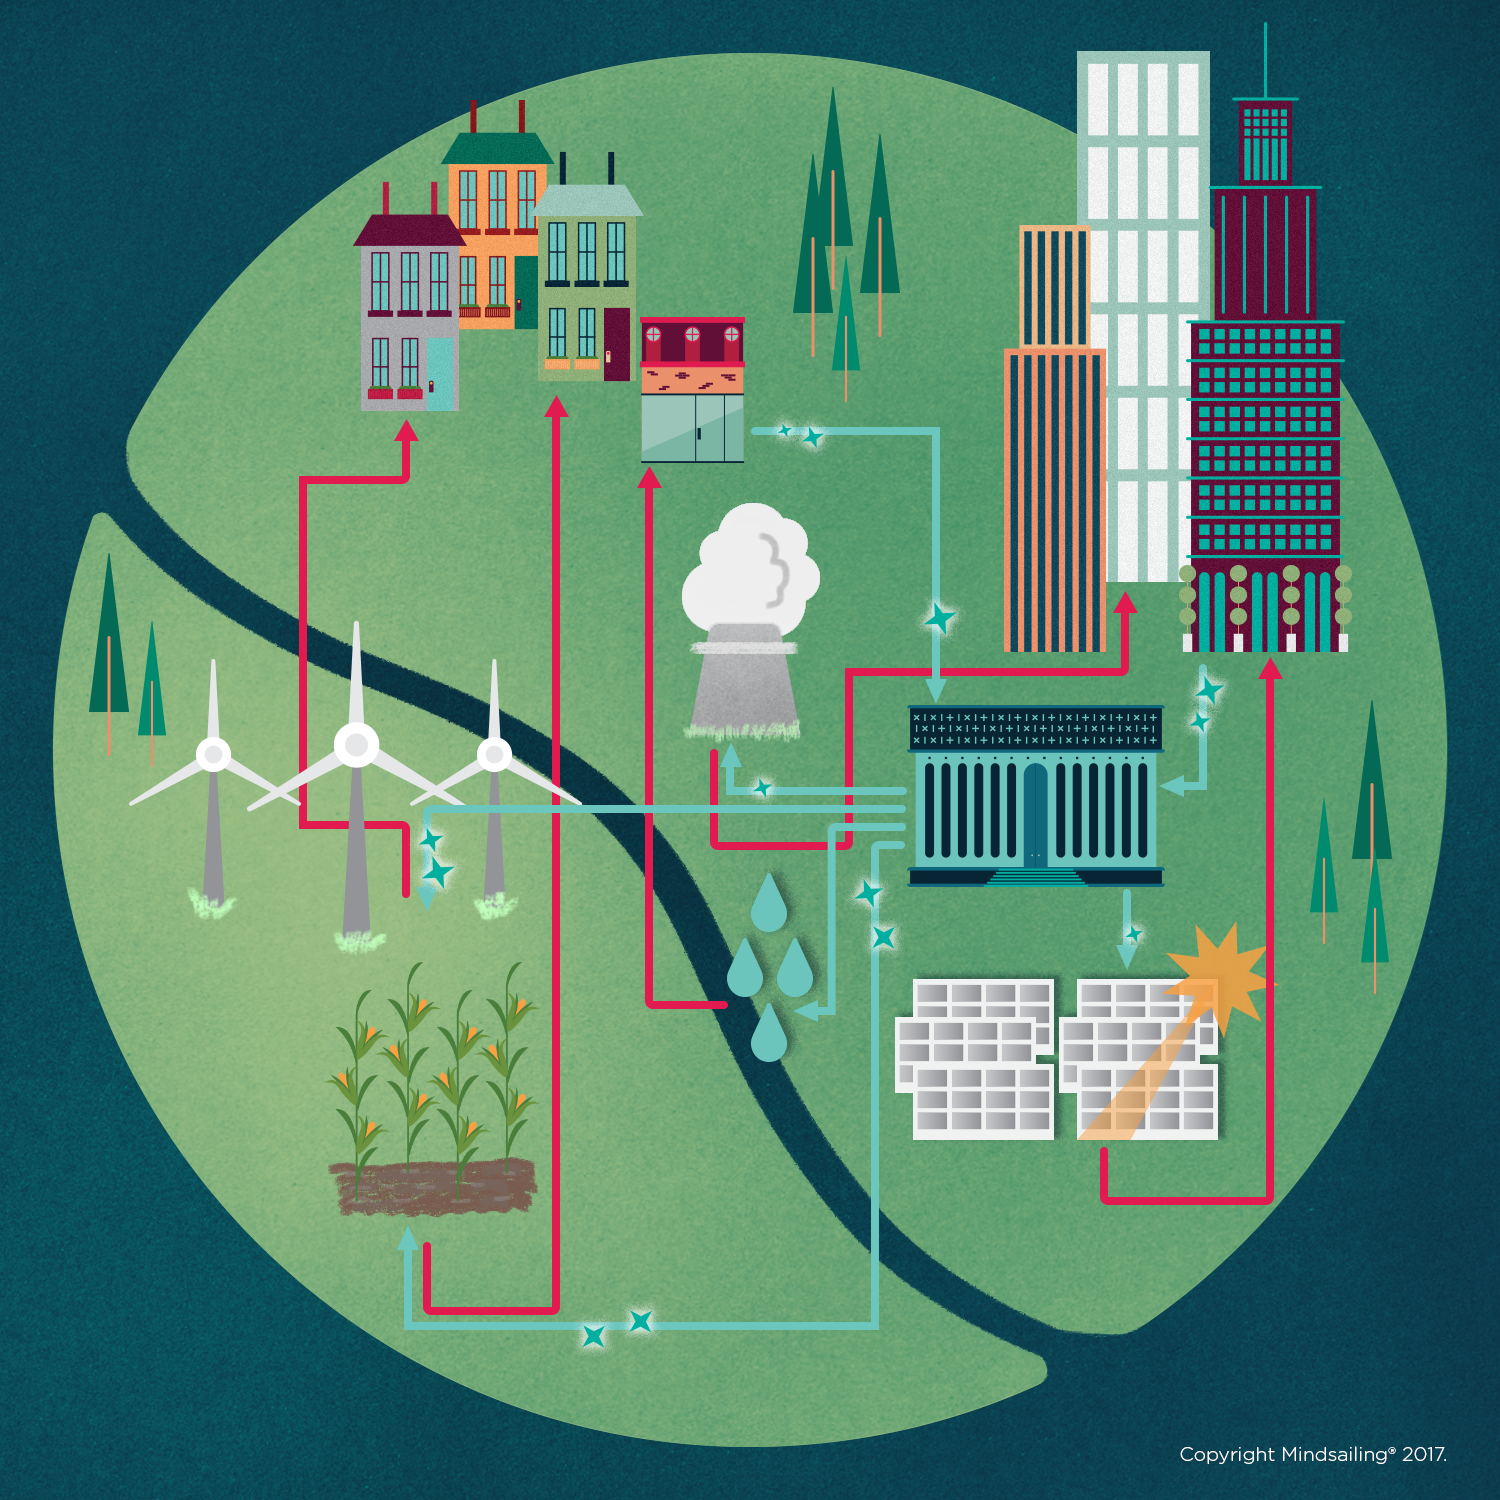 MS109W_SmartGrid_Infographic_1.0.png